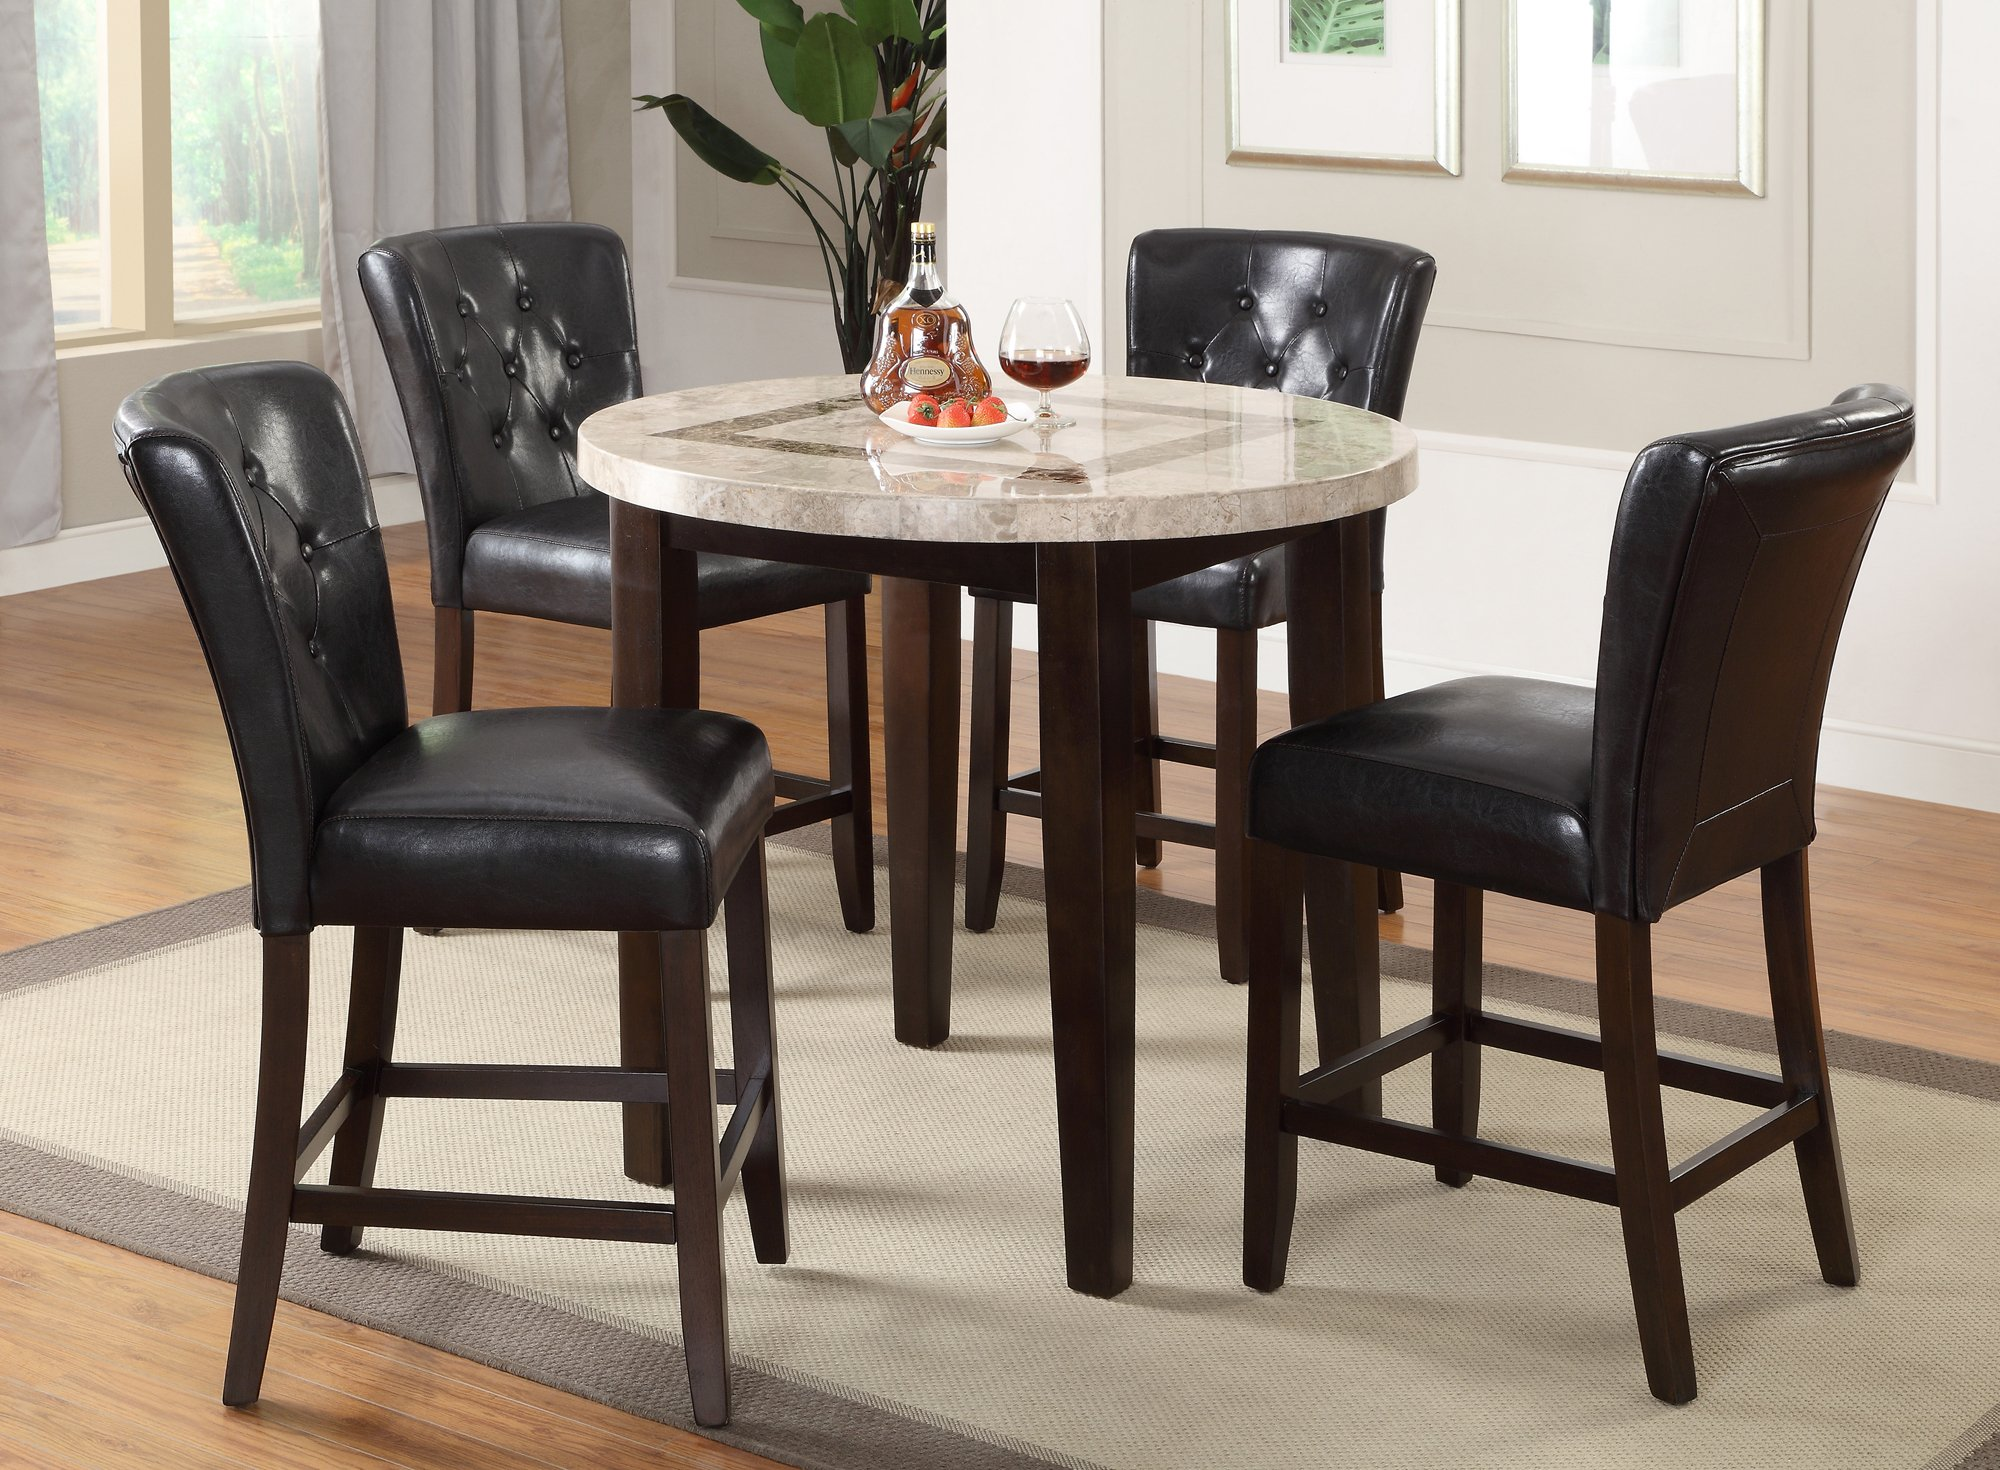 Espresso 3 Piece Pub Round Dining Set Montreal RC  : Dark Espresso and Marble Pub Round Dining b Table b Montreal rcwilley image1 from www.rcwilley.com size 2000 x 1470 jpeg 409kB